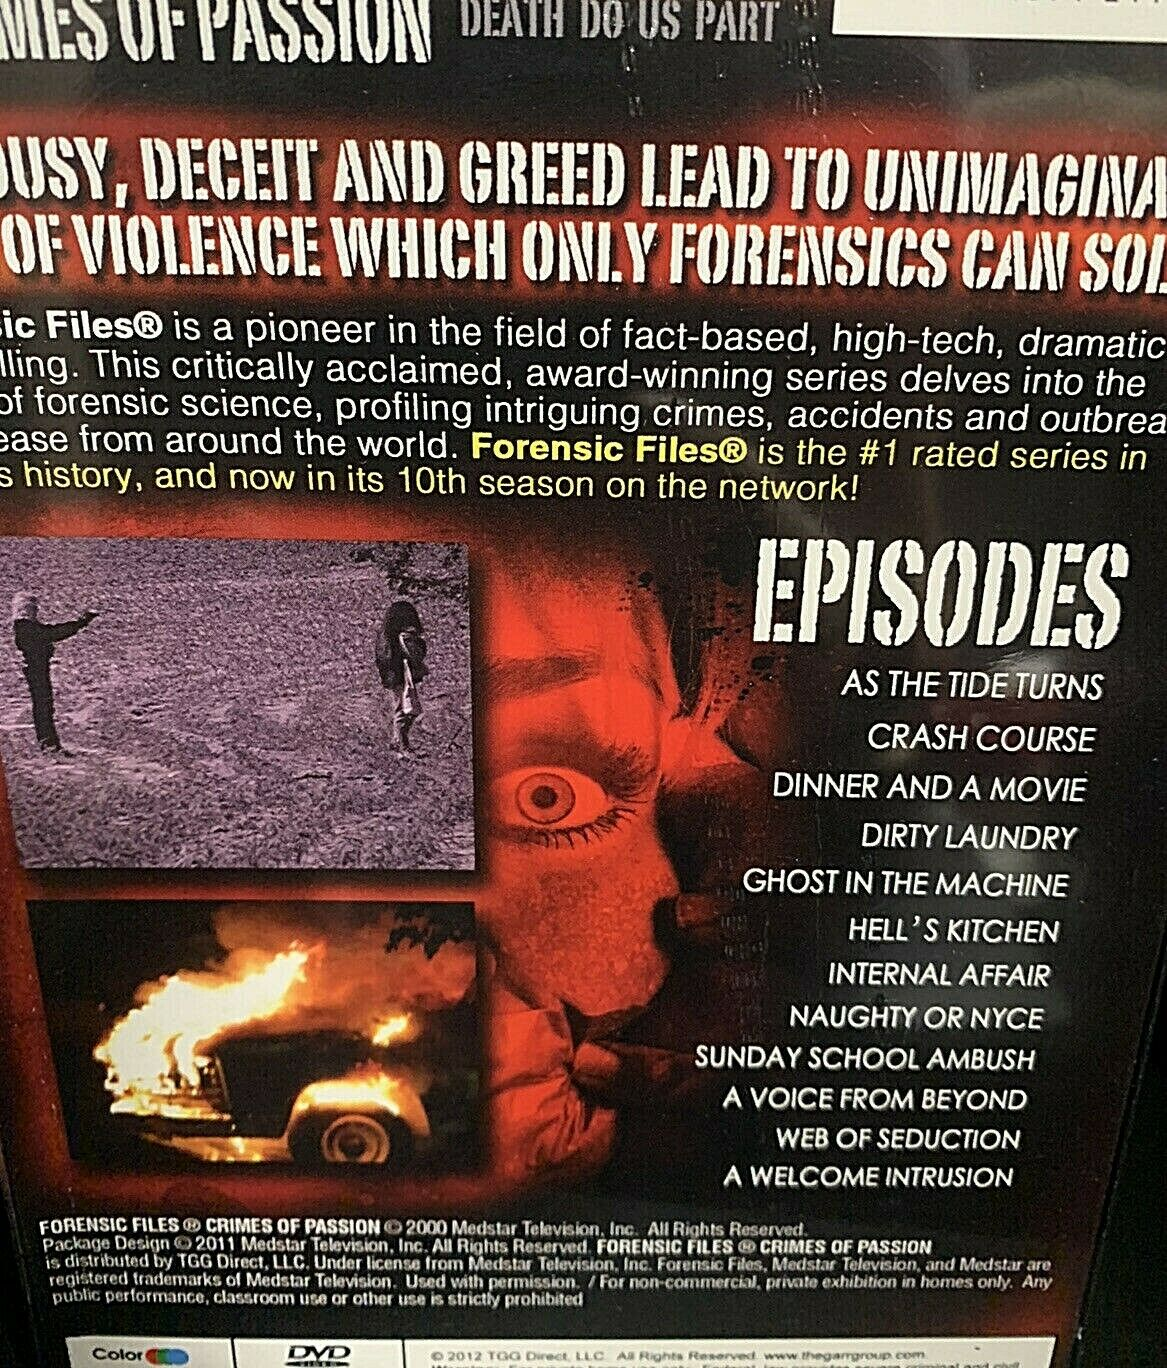 43 Horrifying Life Lessons I Ve Learned From Watching Every Episode Of Forensic Files Autostraddle